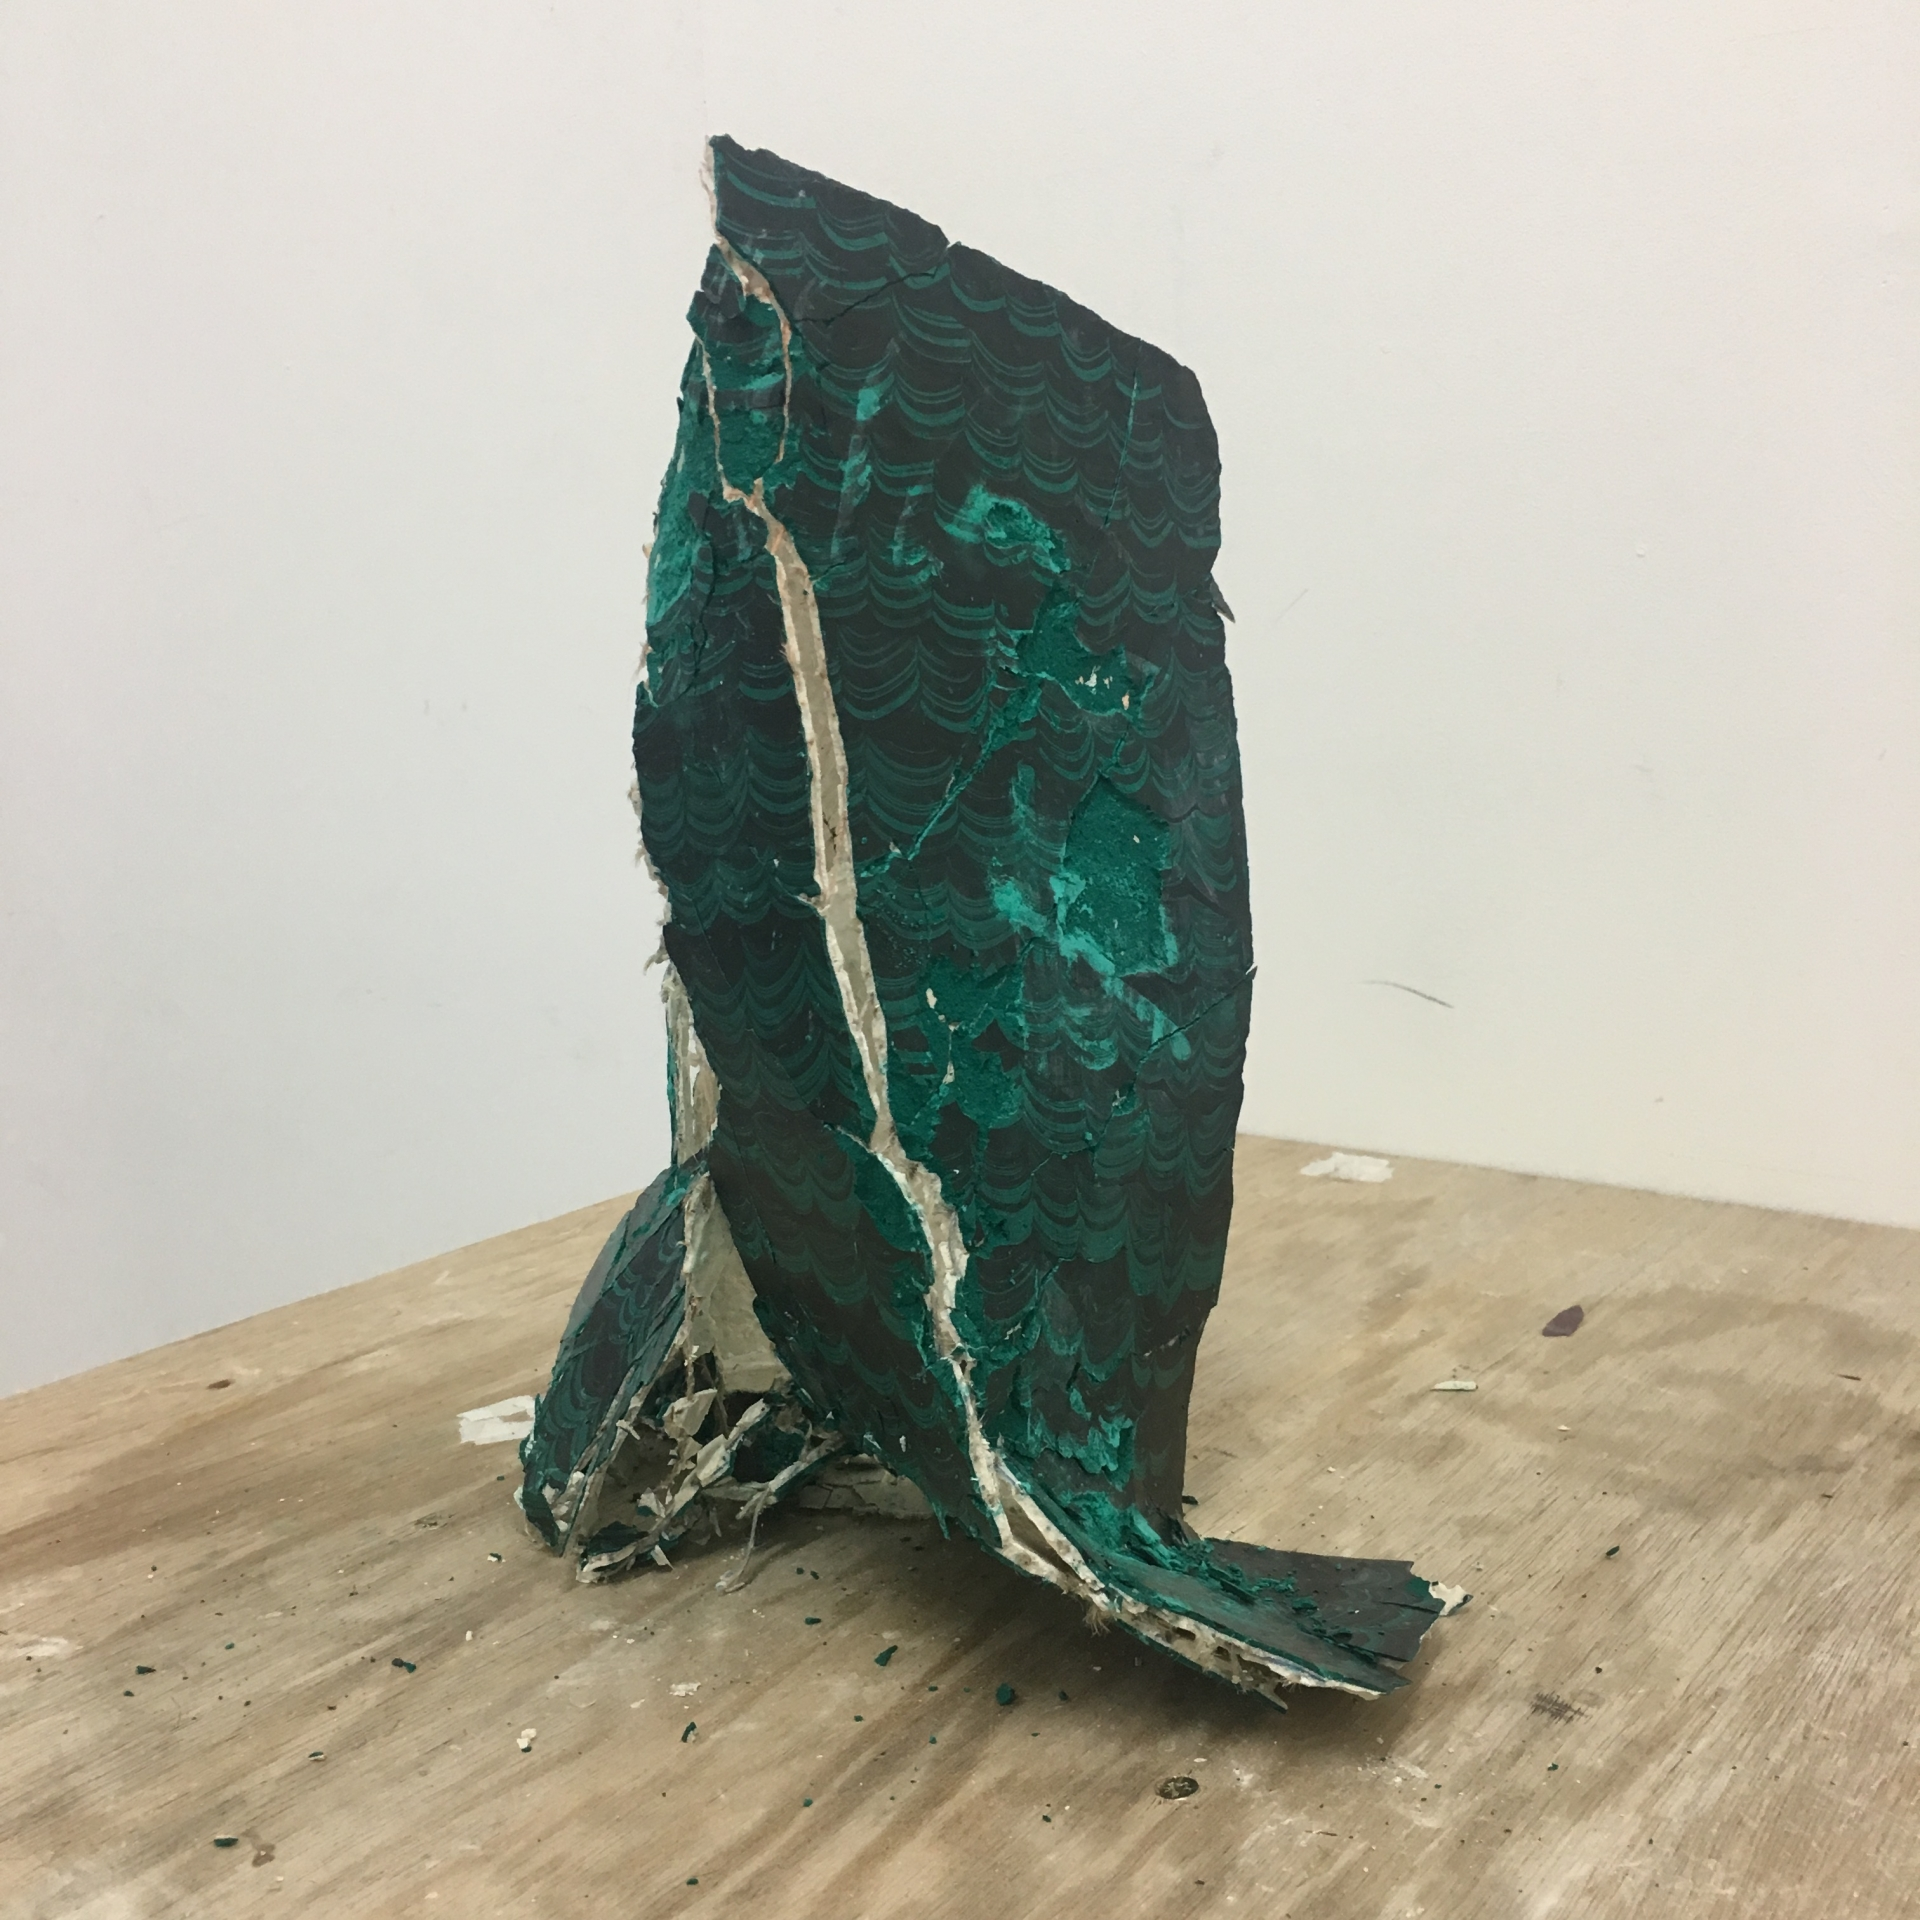 Harminder Judge > Wave From The Dragons Gut 2017 ////// polymer, plaster, pigments, oil, wax ////// 42cm x 34cm